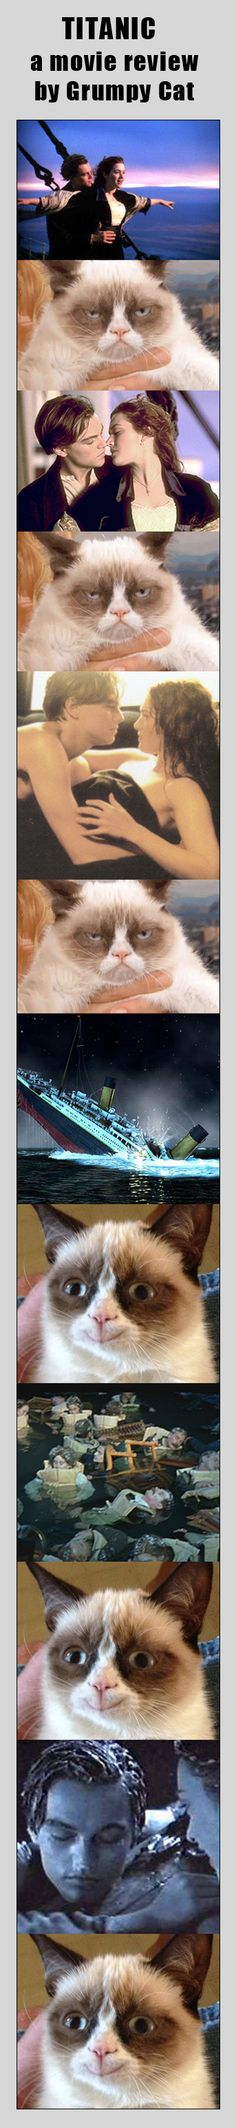 Tard the Grumpy Cat reviews the Titanic movie | #GrumpyCat #Tard #Titanic #Funny